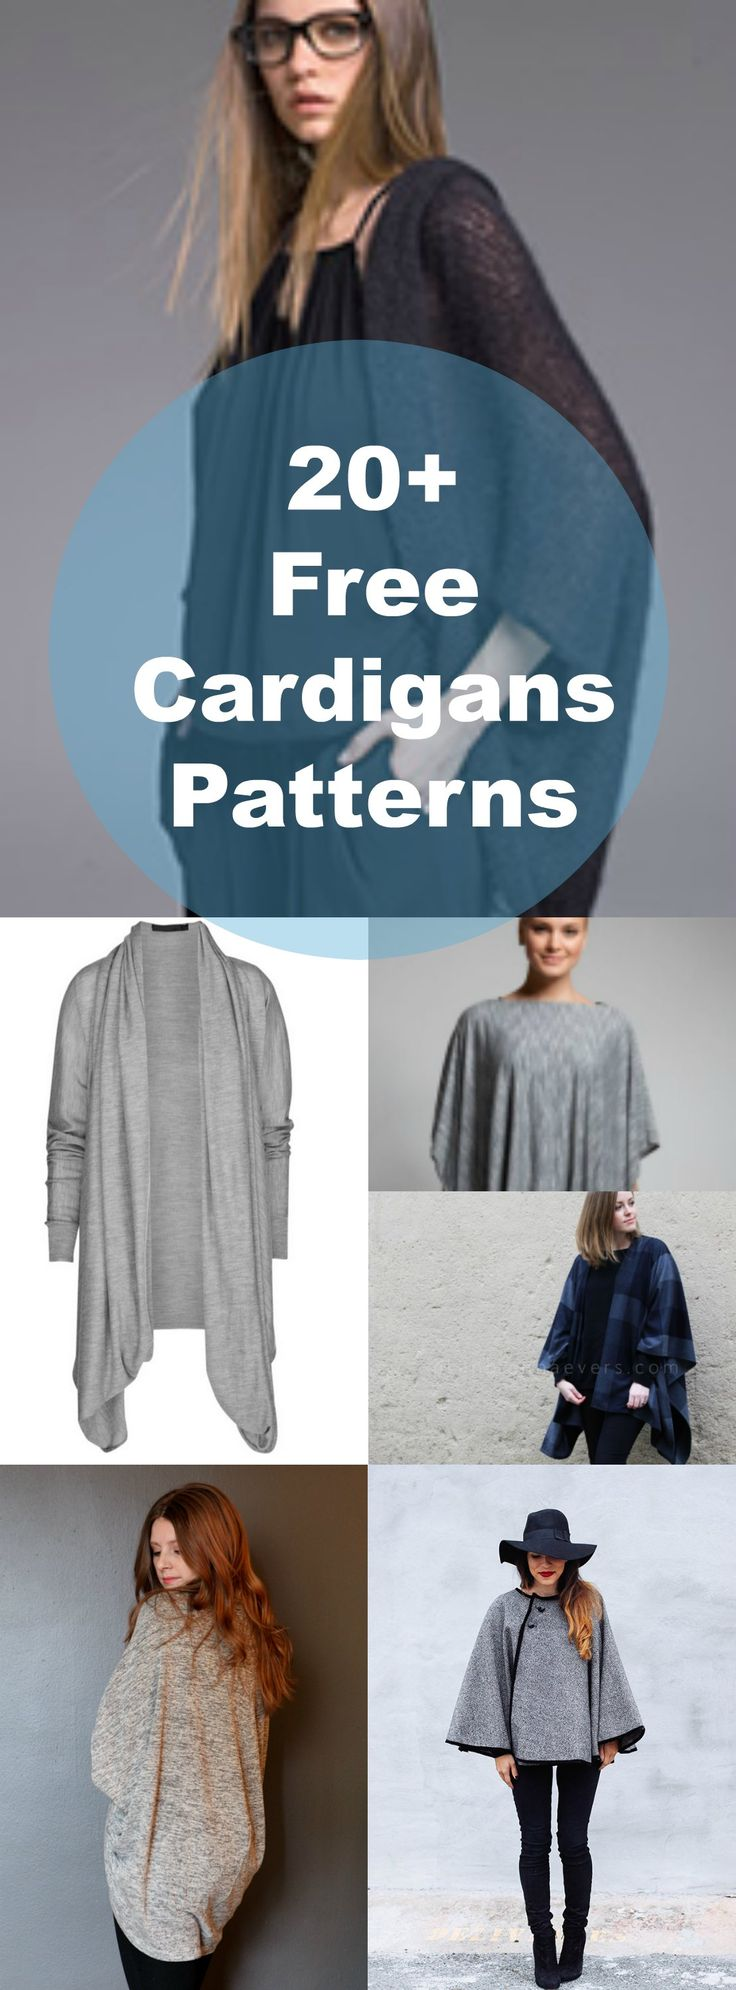 20+ Free Patterns for Cardigans and Sweaters | Free Sewing Patterns and Tutorials: